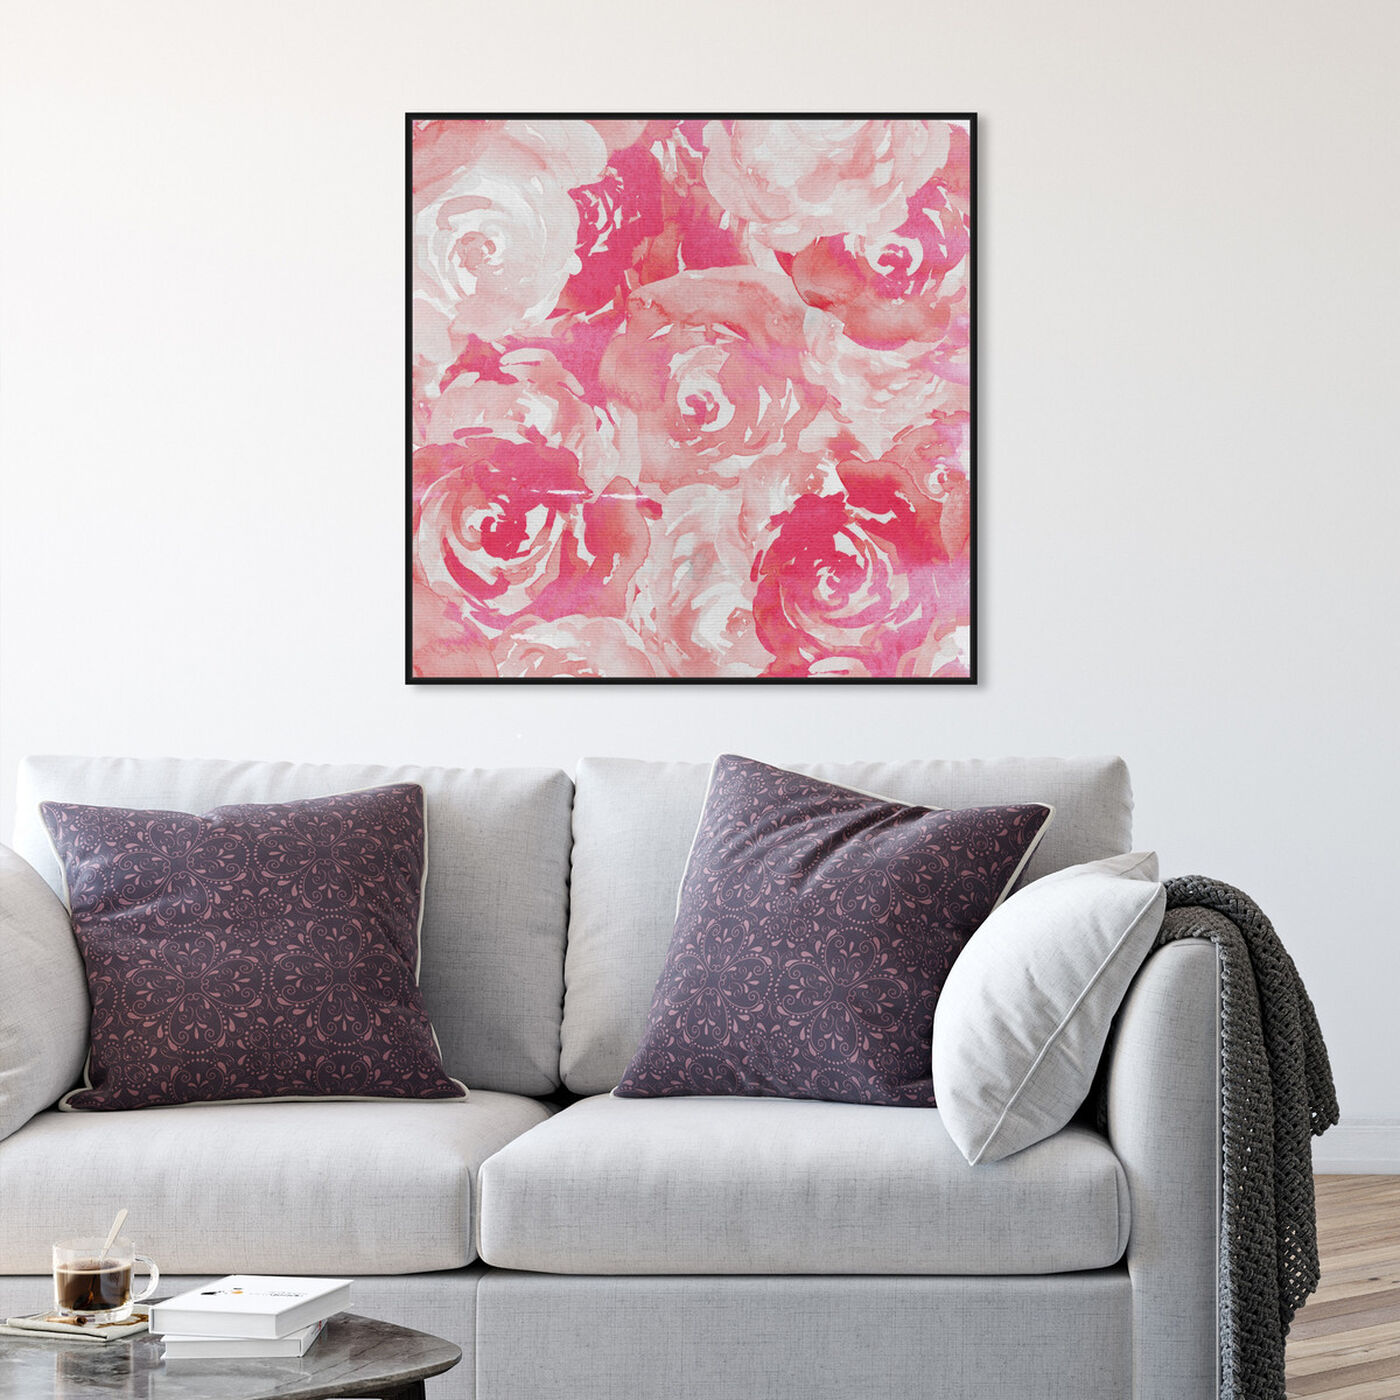 Hanging view of Pink Roses featuring floral and botanical and florals art.